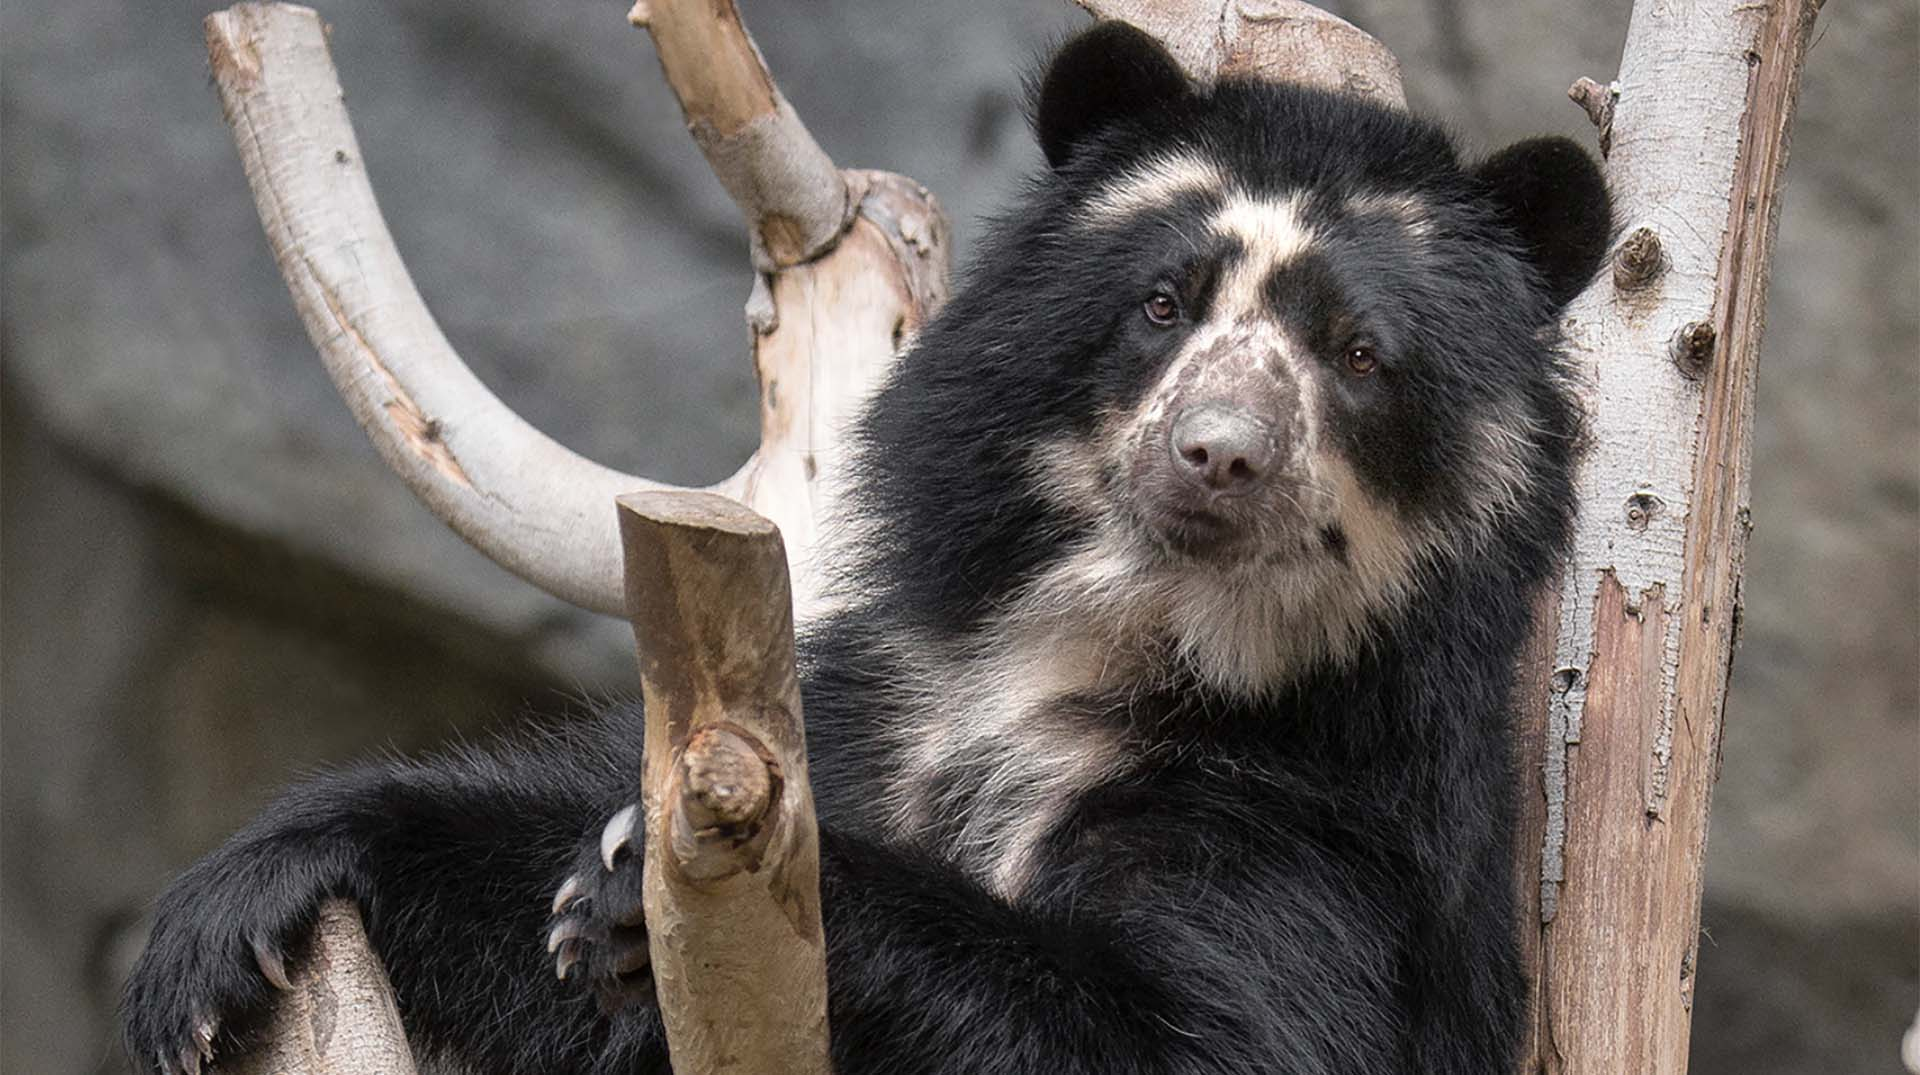 Alba, an Andean Bear at the San Diego Zoo